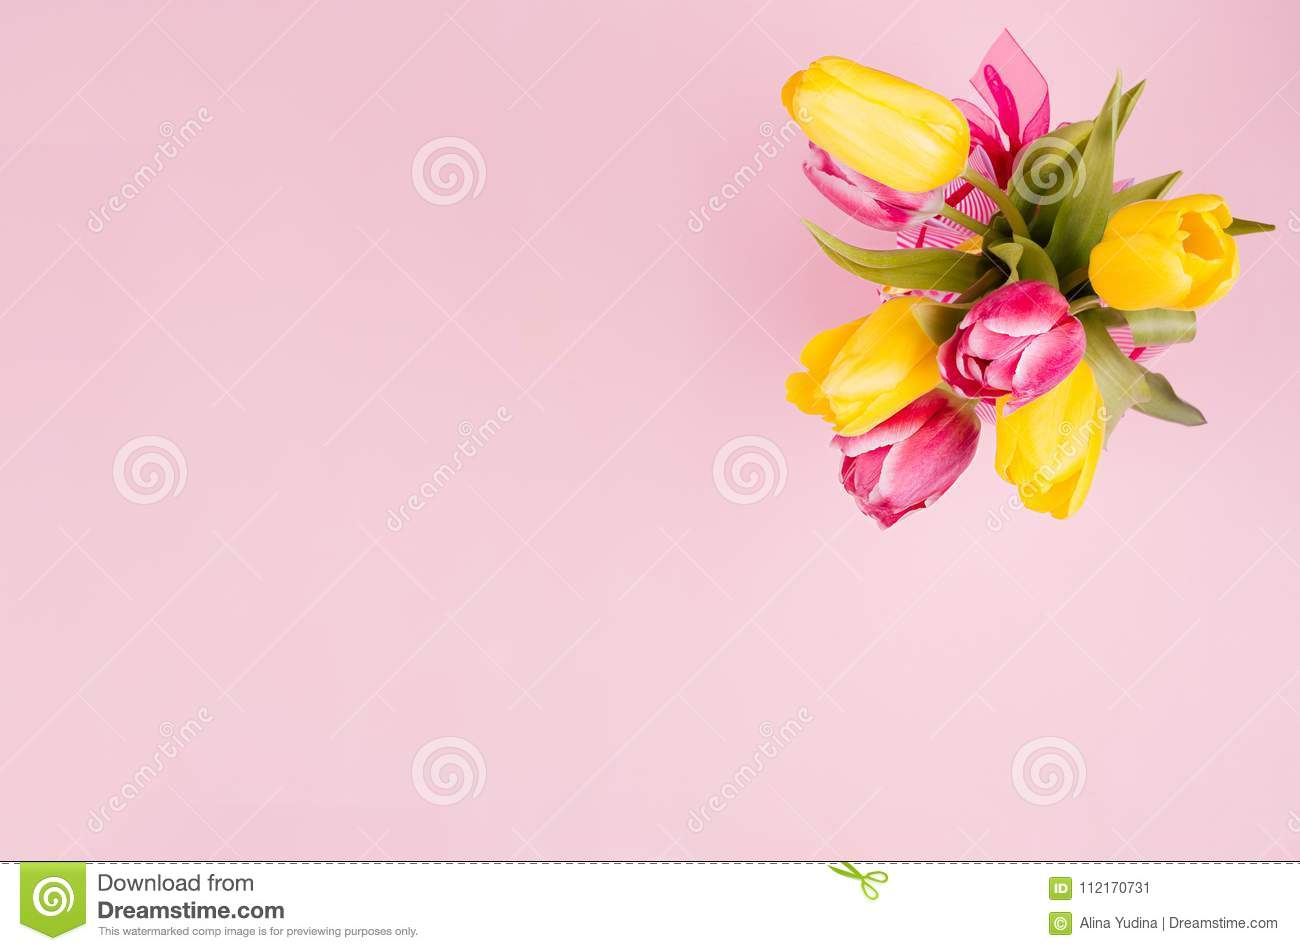 Spring fresh tulips yellow and red bouquet on pastel pink background.